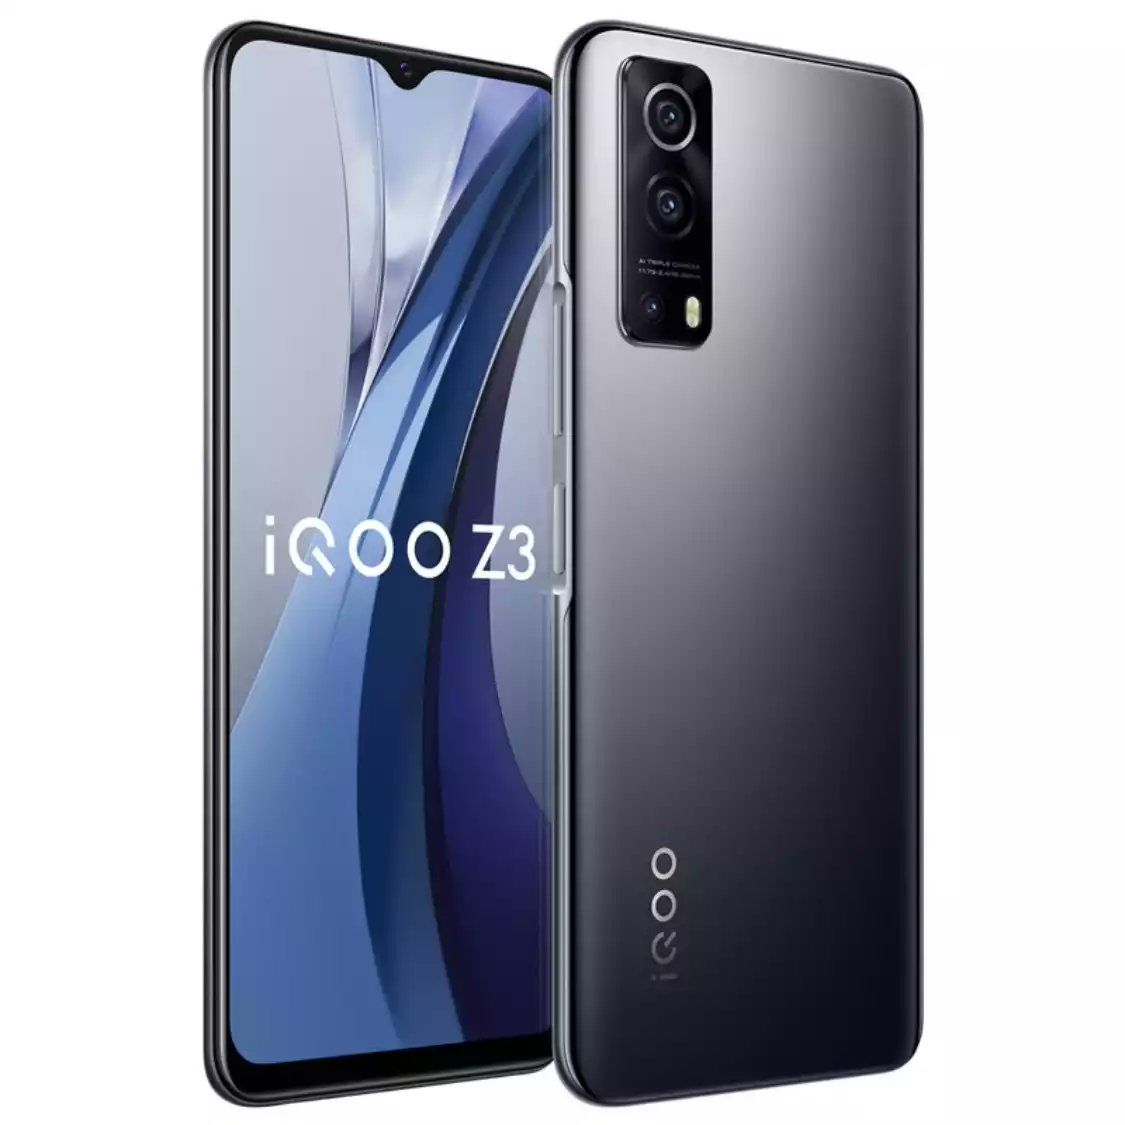 The iQOO Z2 is an affordable 5G gaming smartphone